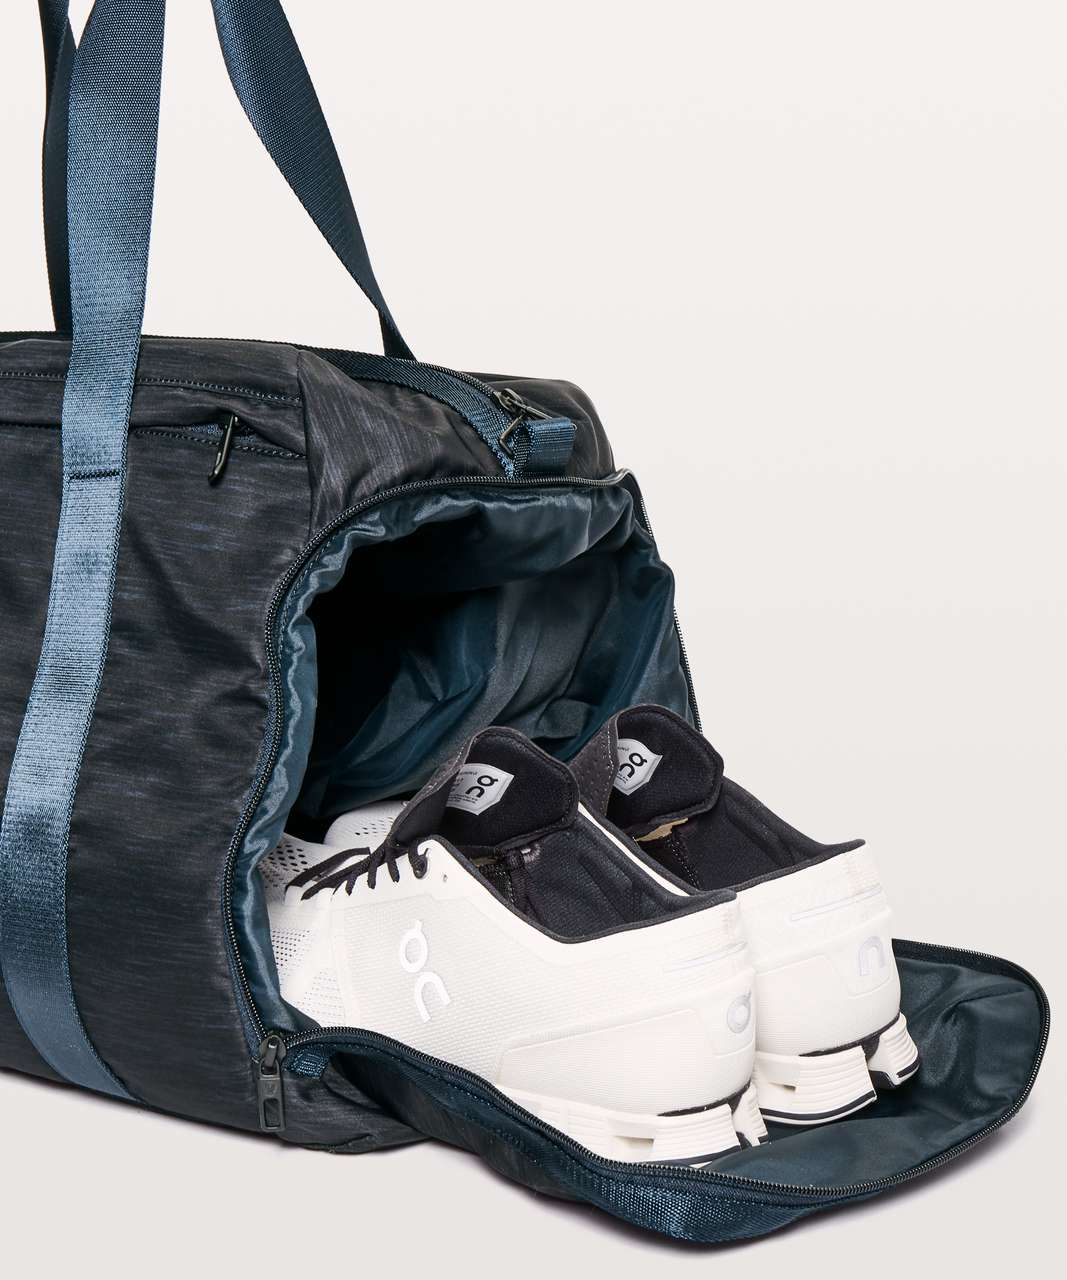 Lululemon Command The Day Duffle *37L - Heather Allover Iron Blue True Navy